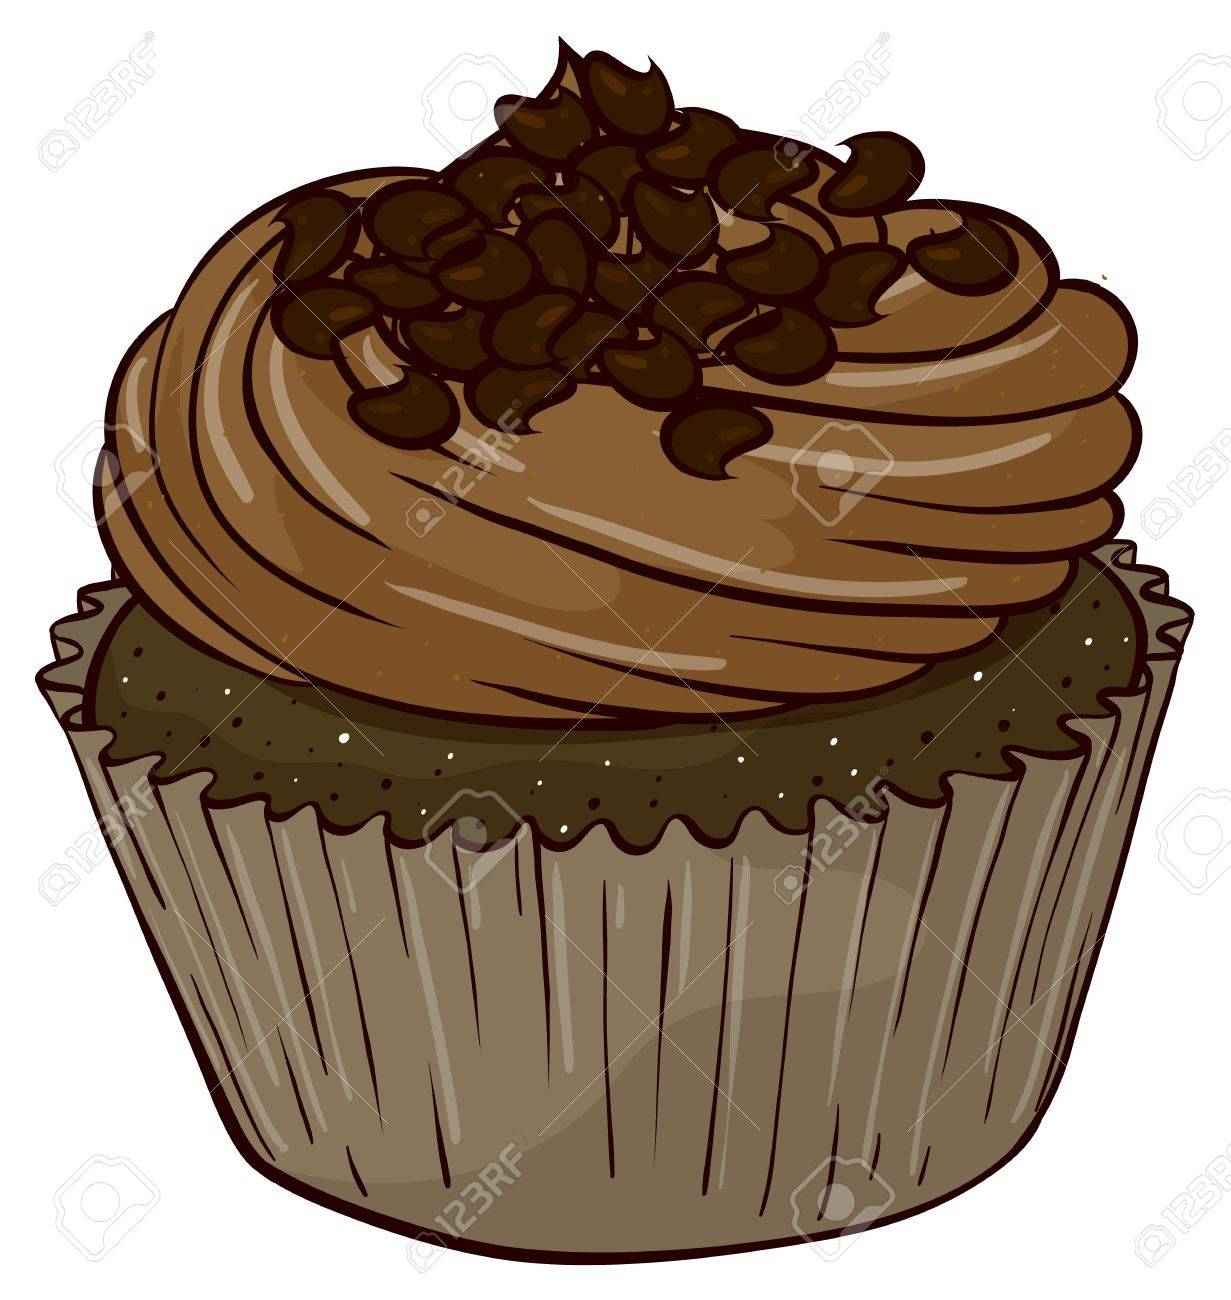 Illustration of an isolated cupcake Stock Vector - 16157998